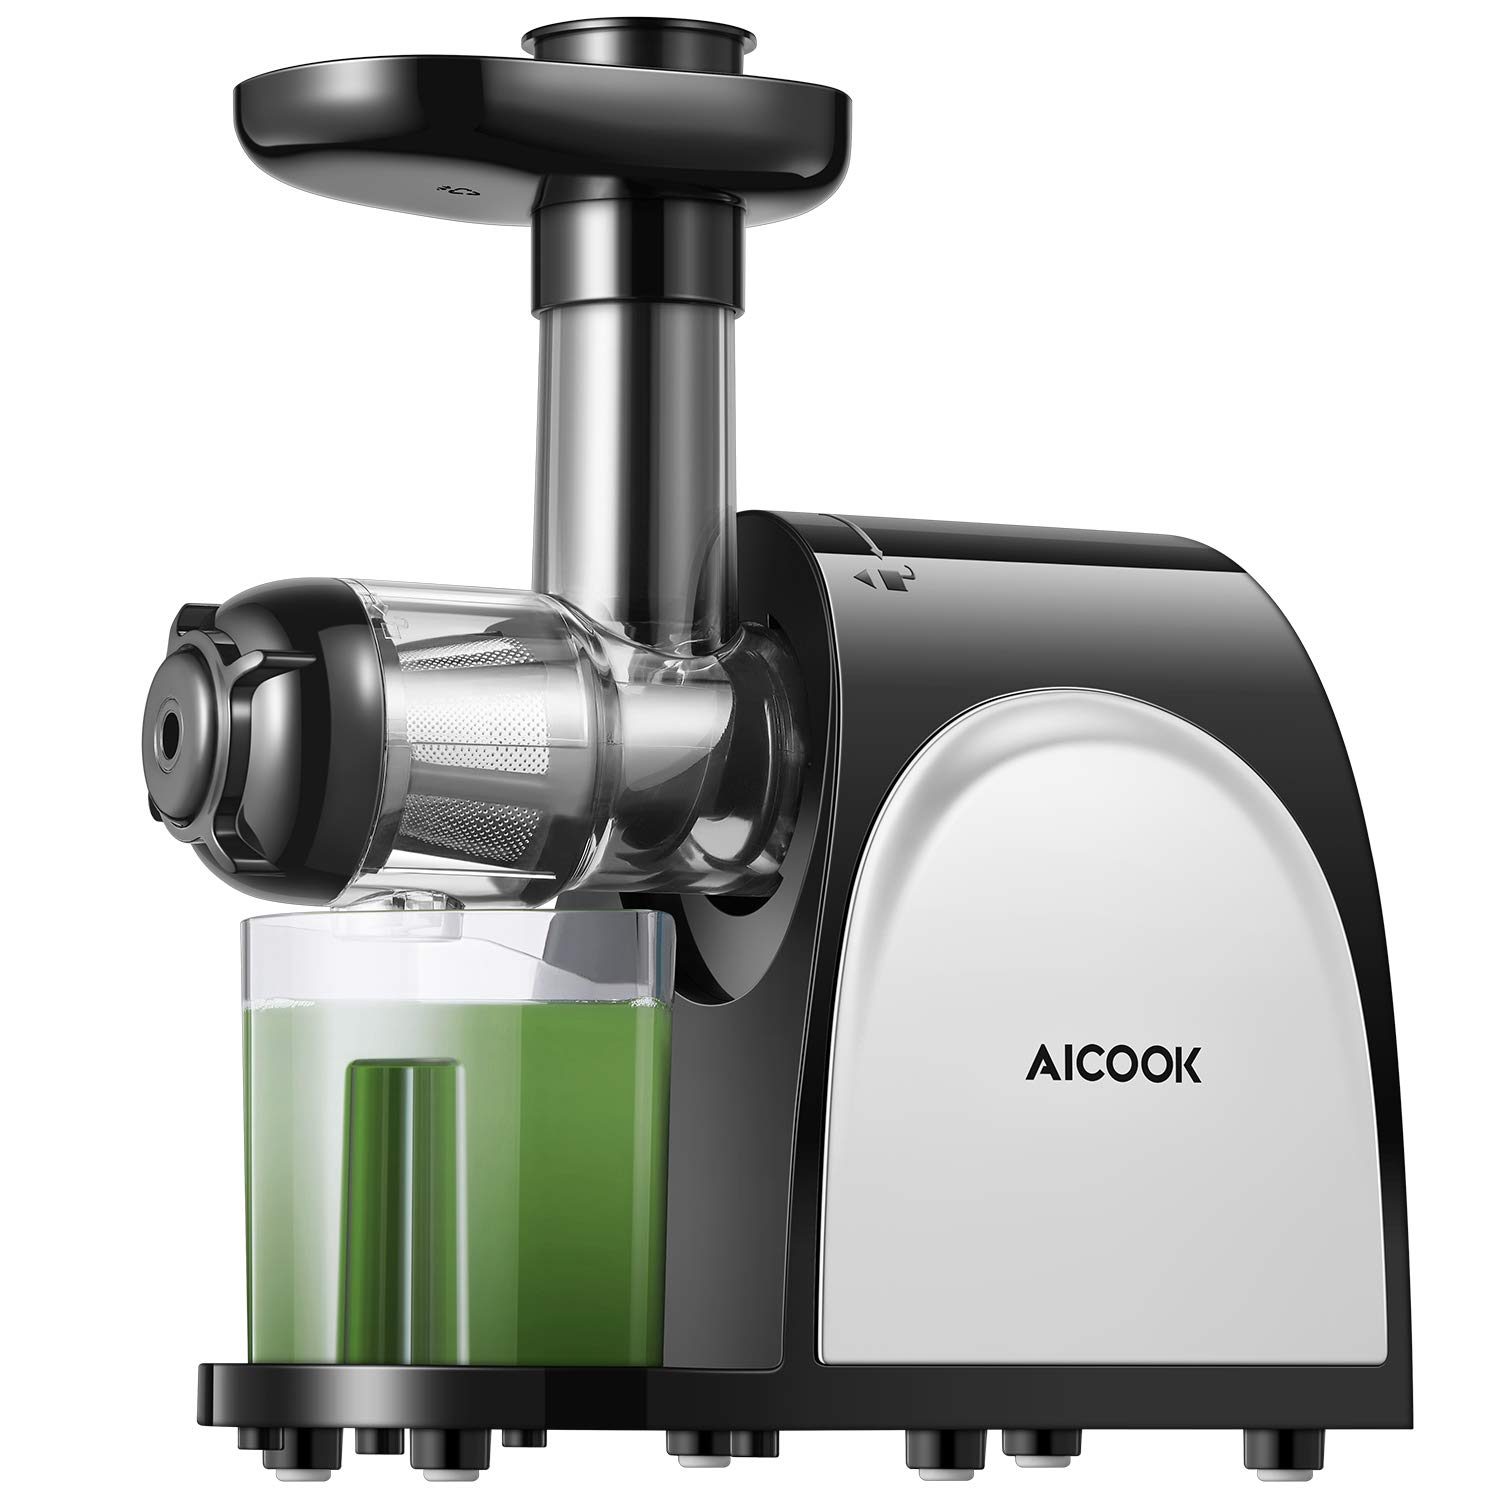 Juicer, Aicook Slow Masticating Juicer, Cold Press Juicer Machine, Higher Juicer Yield and Drier Pulp, Juice Extractor with Quiet Motor and Reverse Function, Easy to Clean by AICOOK